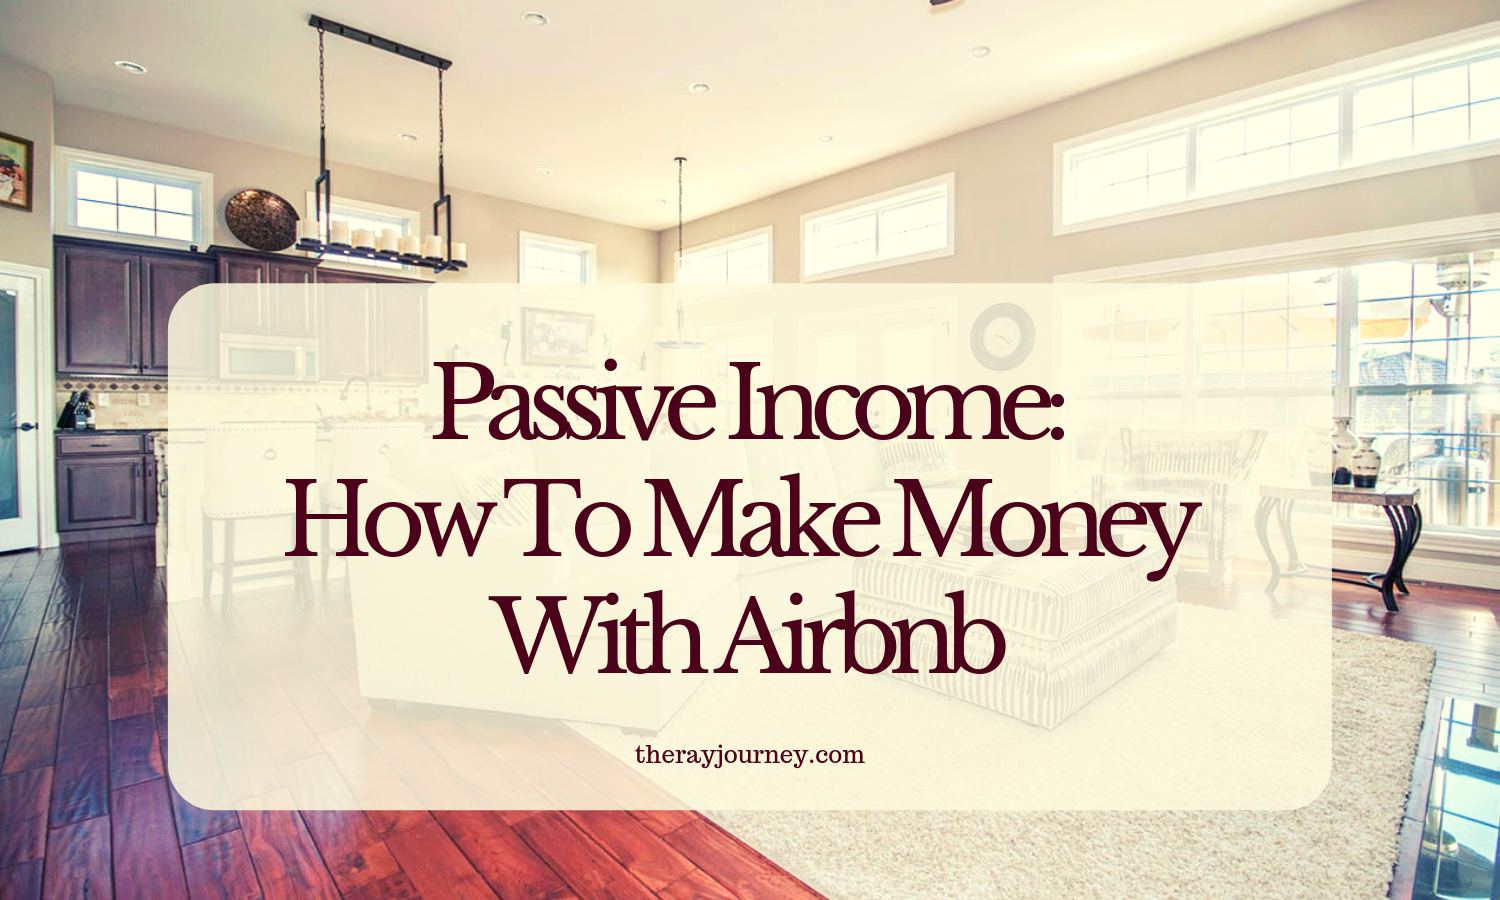 Passive Income: How To Make Money With Airbnb